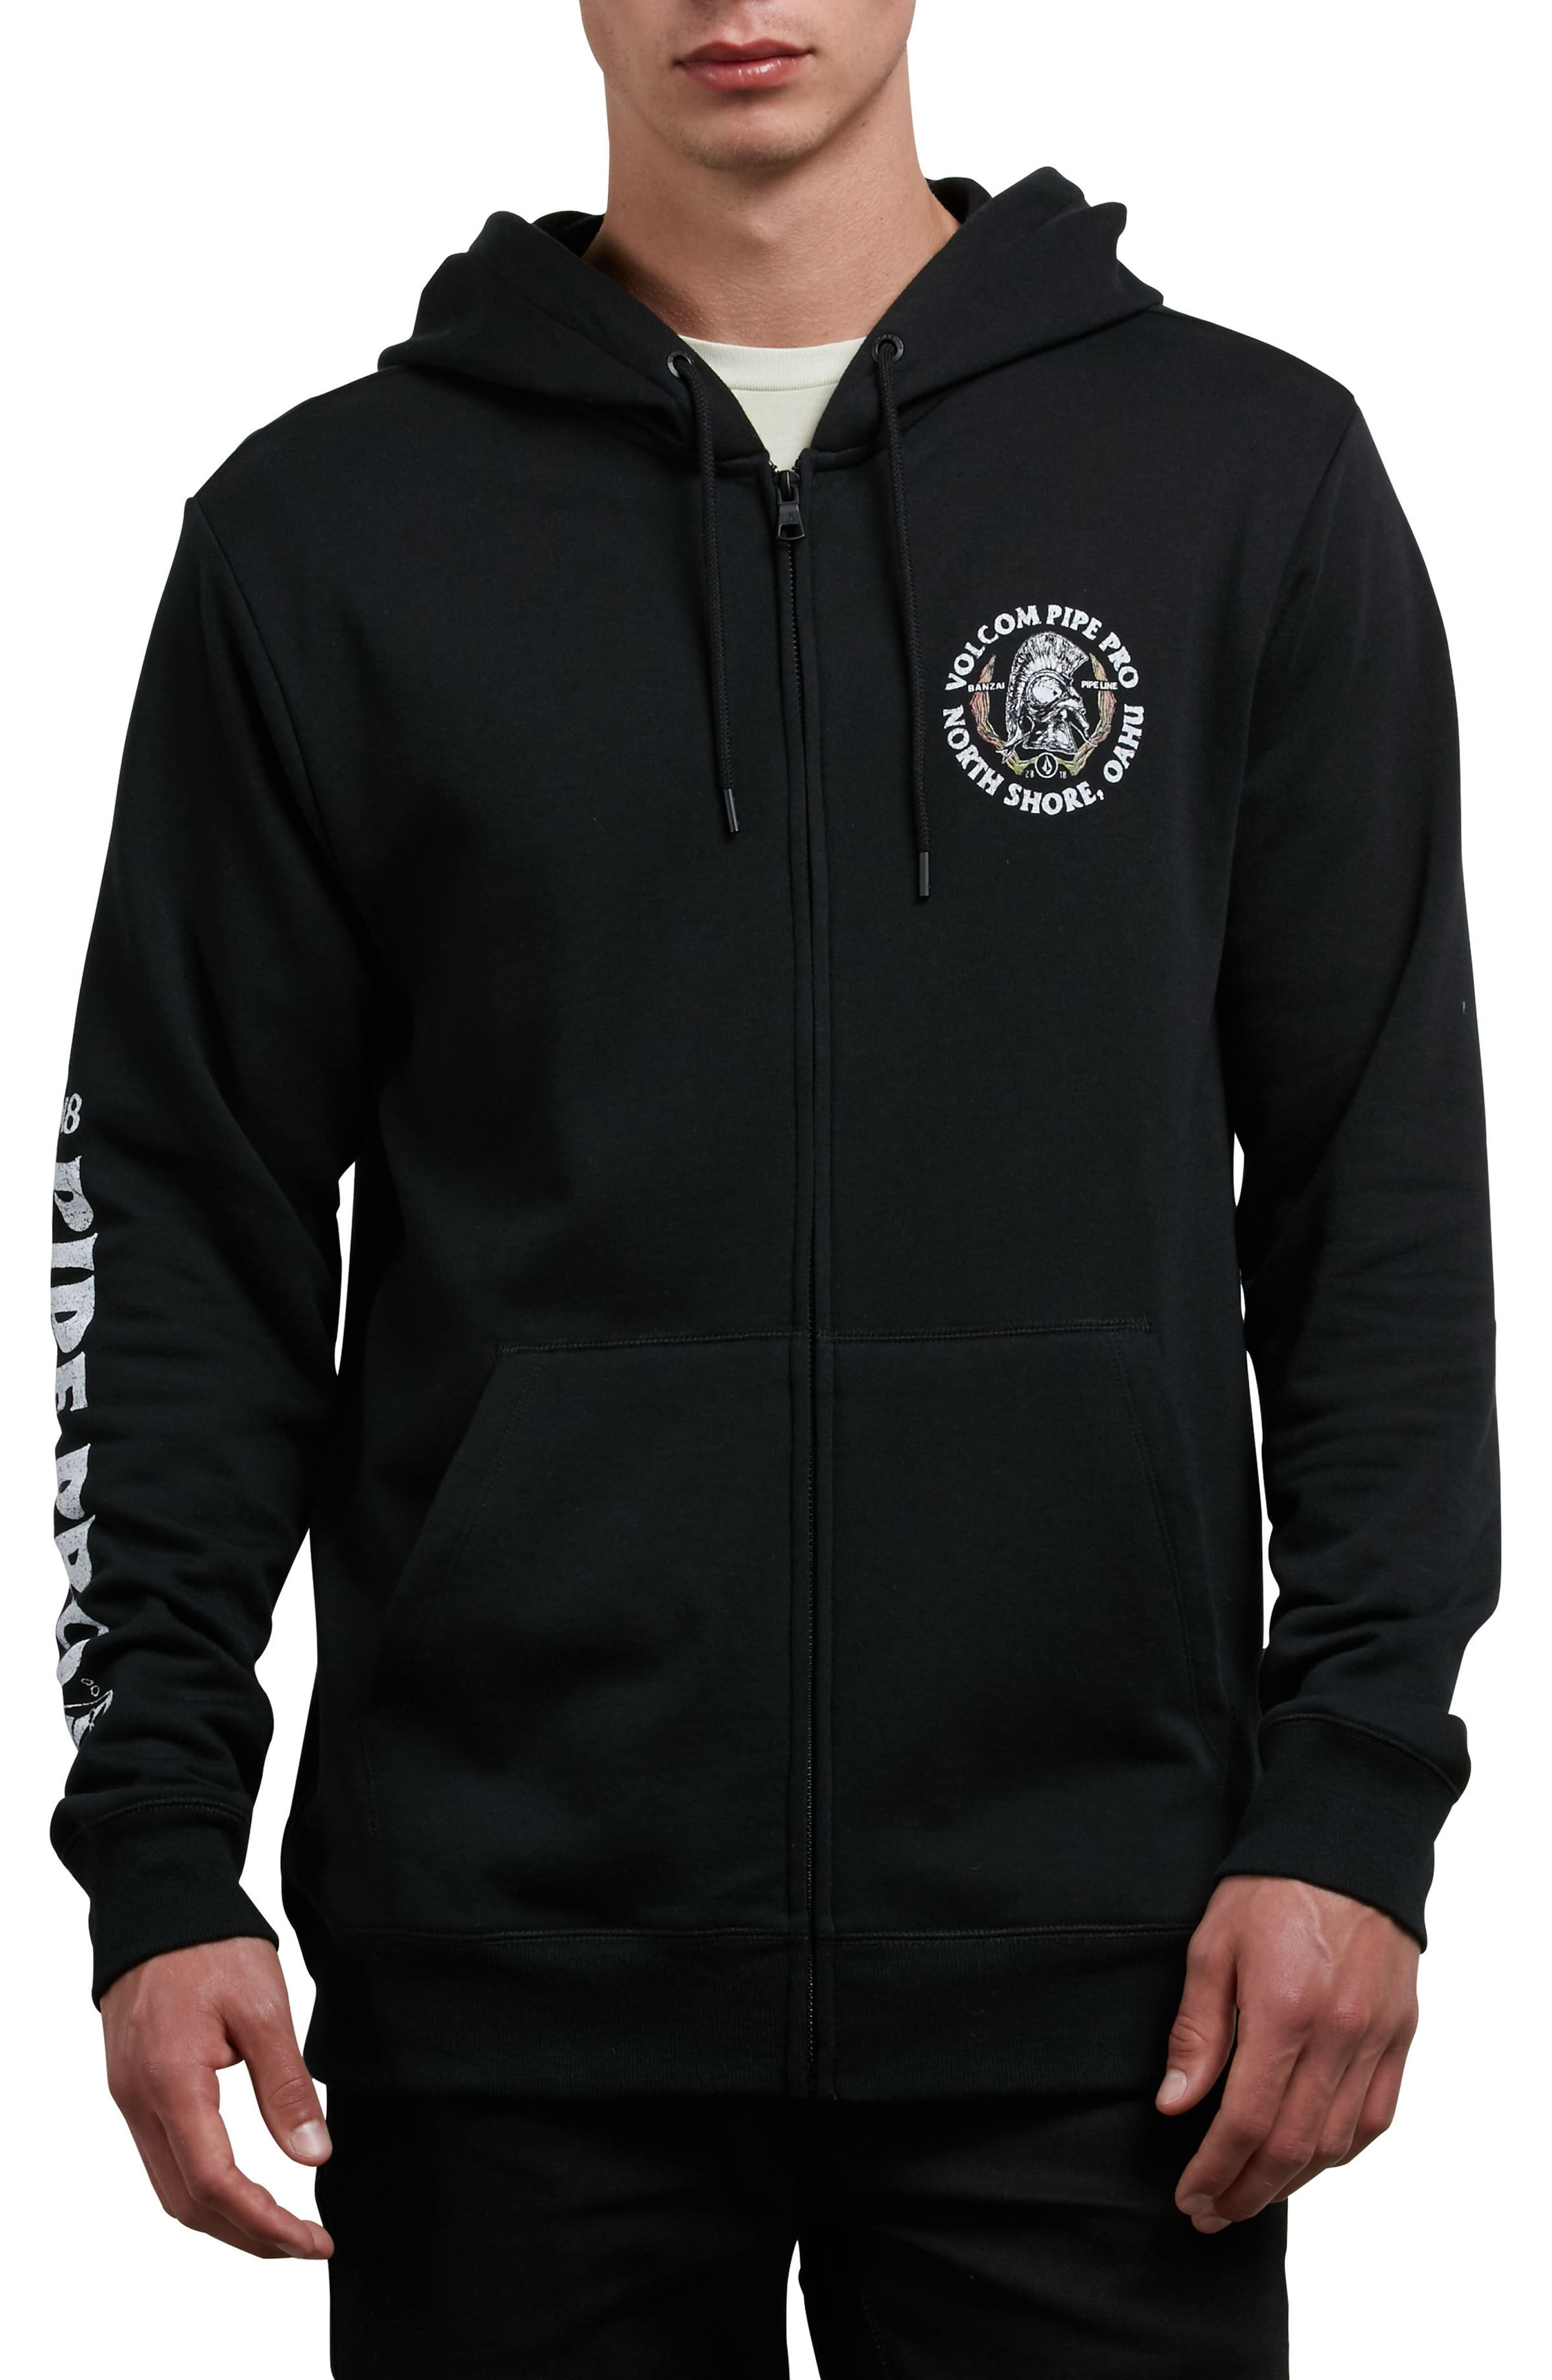 Pipe Pro Seal Graphic Zip Hoodie,                             Main thumbnail 1, color,                             001